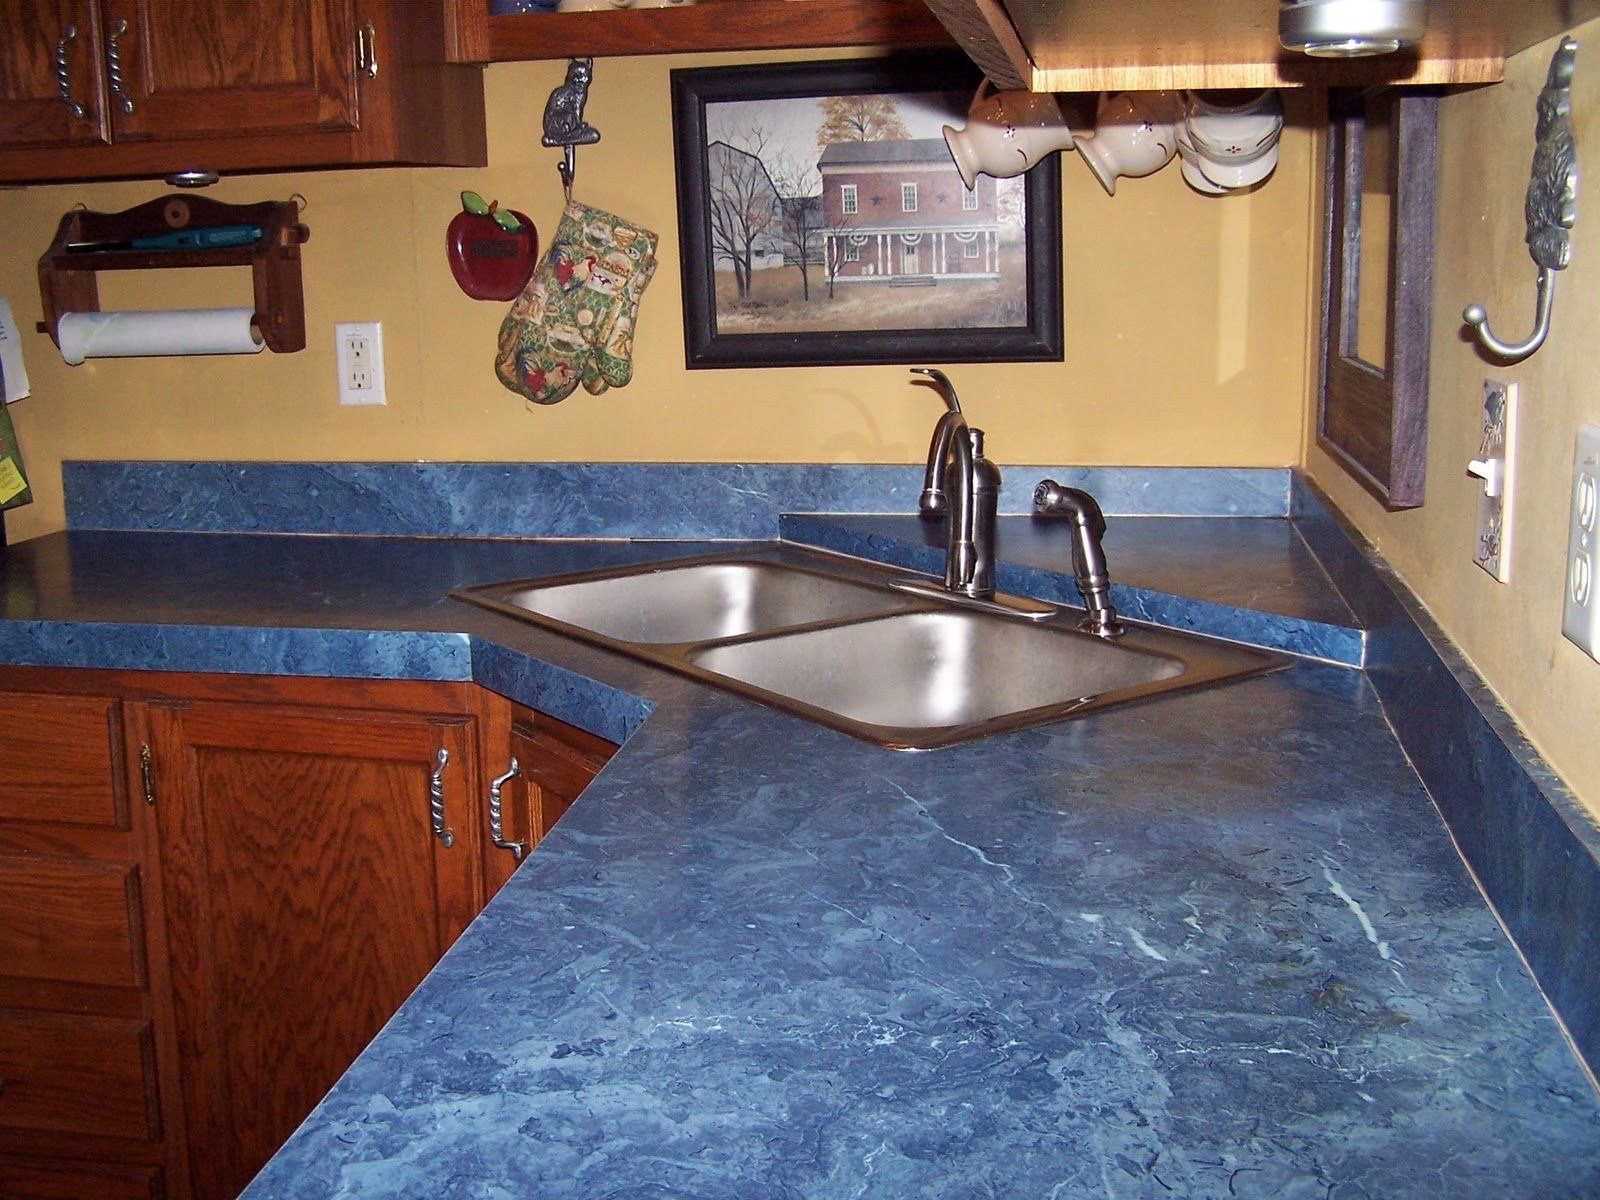 Modern Kitchen Interior Design With Blue Countertop